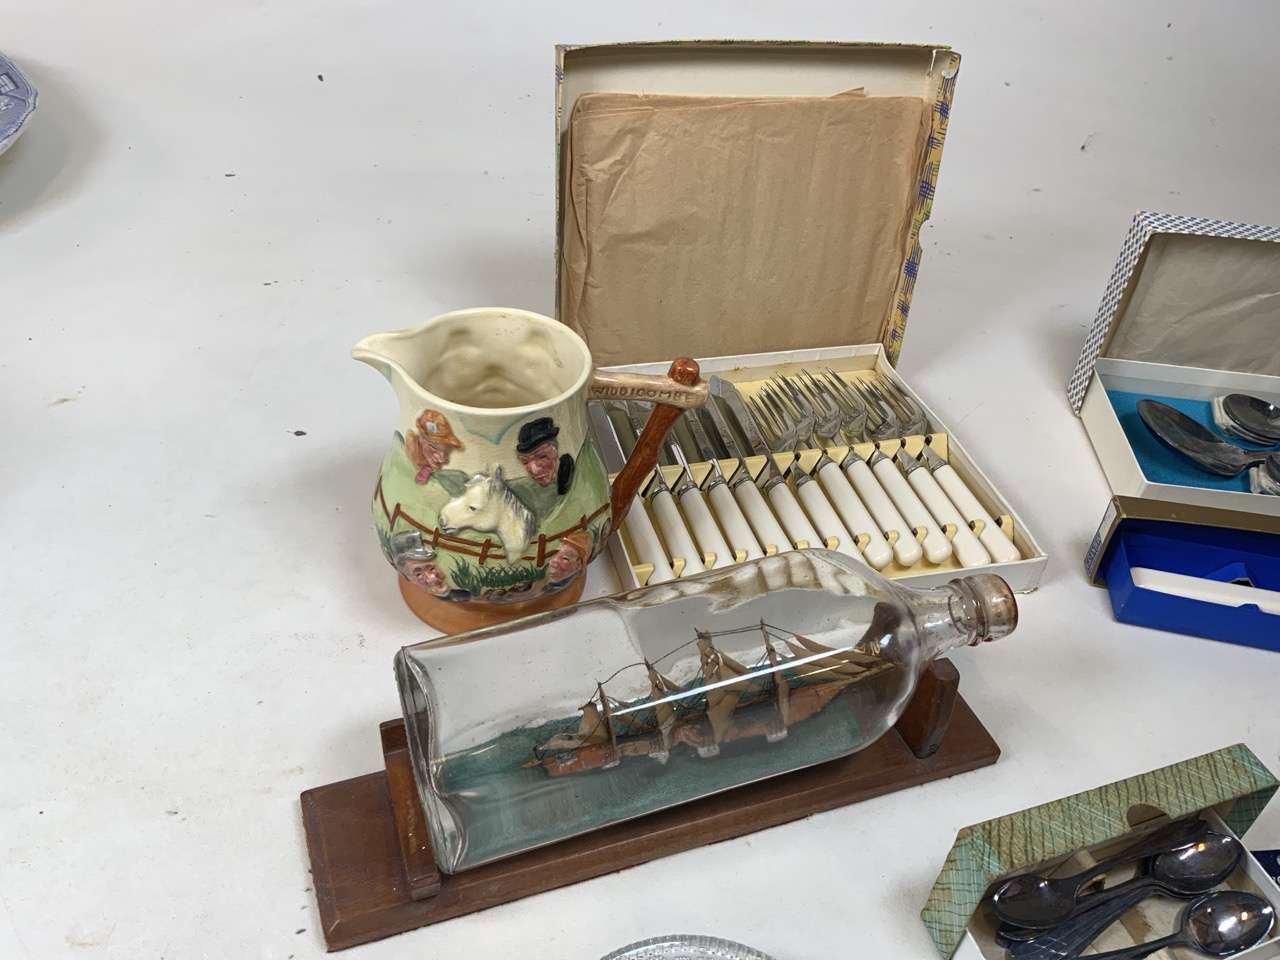 A Japanese ceramic bird cruet together with a copper tea caddy, cutlery, a ship in a bottle , a - Image 2 of 5